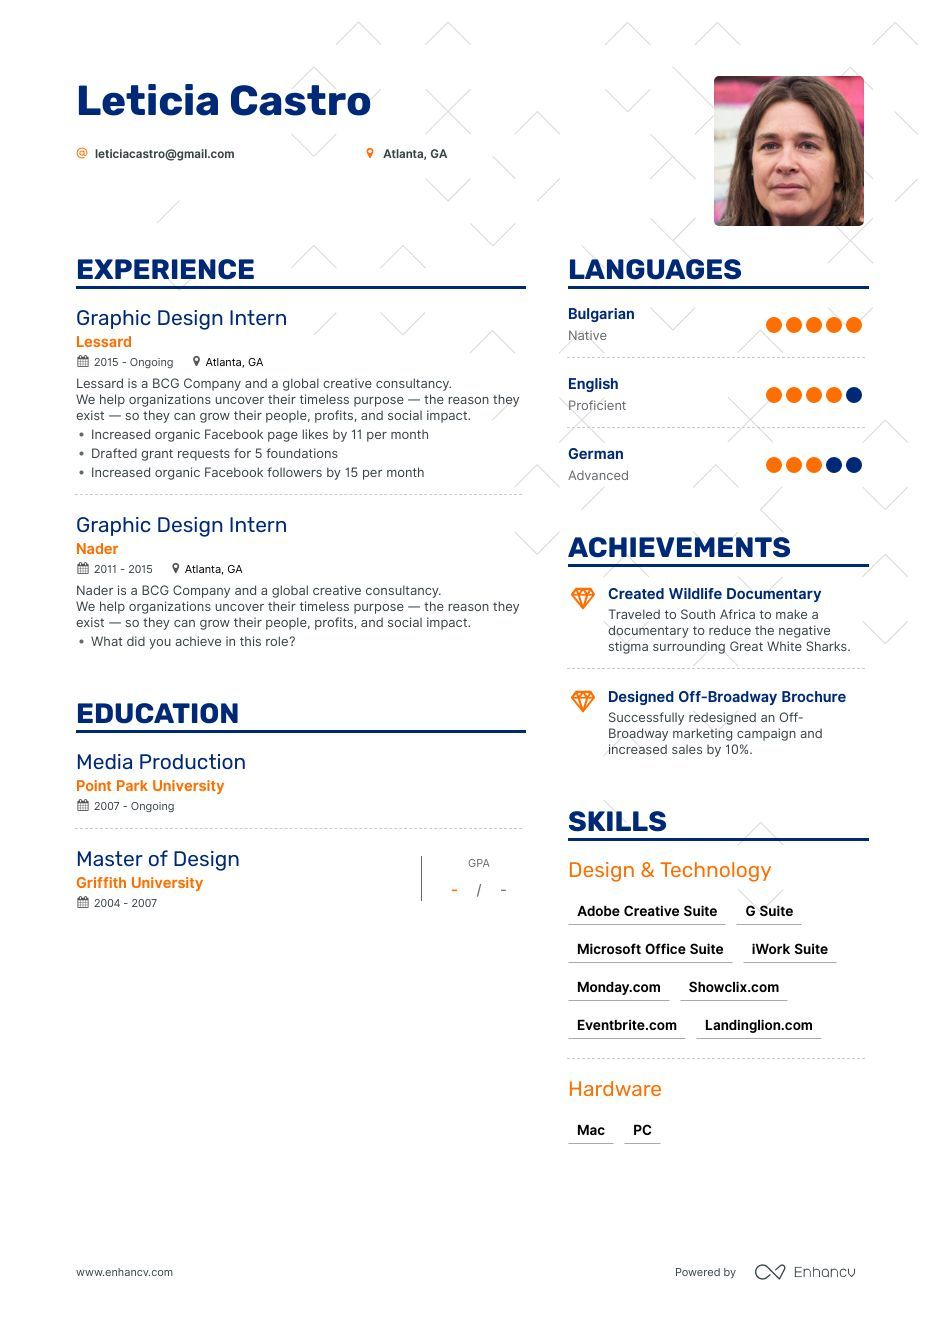 Top Graphic Design Intern Resume Examples & Samples for